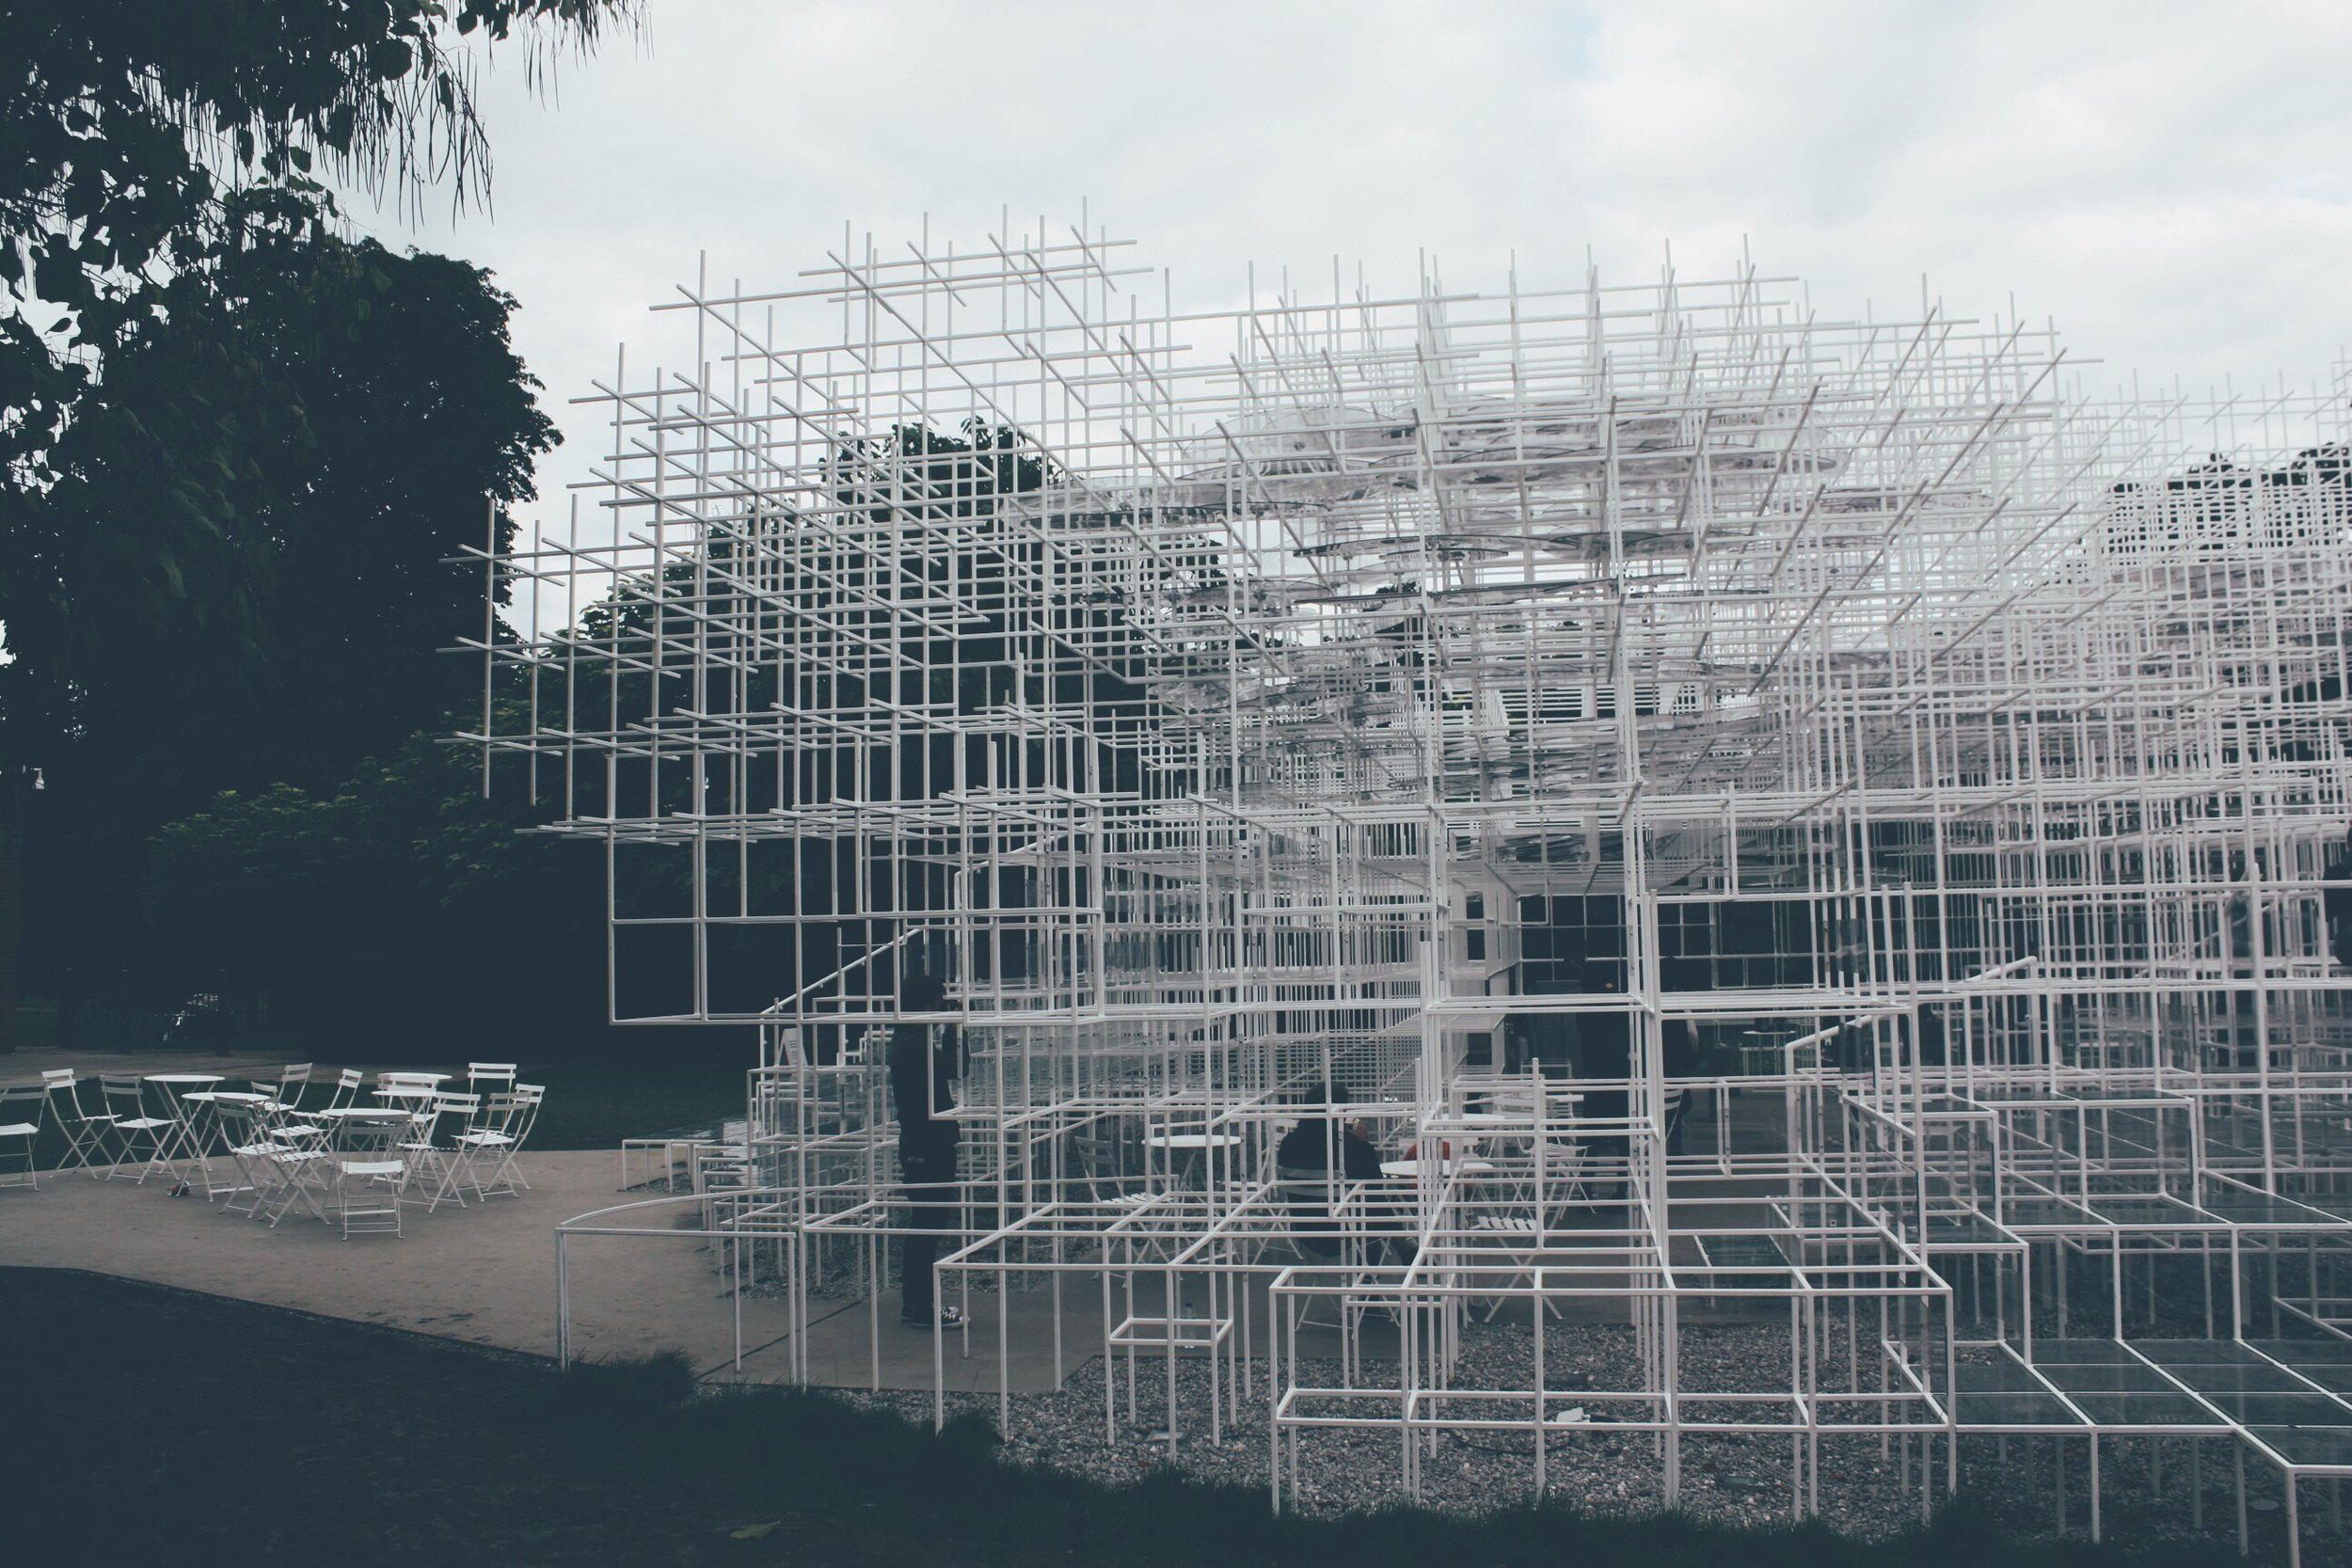 "[The Cloud]  In 2013, the Japanese architect Sou Fujimoto designed a Serpentine Pavilion. Fujimoto sought to create an 'architectural landscape' where people could interact with both, the structure and its surroundings. While the rigid geometry of the structure contrasts with the surrounding greenery, it creates an environment that harmoniously blends nature with human intervention. [5]  ""It is a really fundamental question how architecture is different from nature, or how architecture could be part of nature, or how they could be merged... what are the boundaries between nature and artificial things"". [6] - Sou Fujimoto"